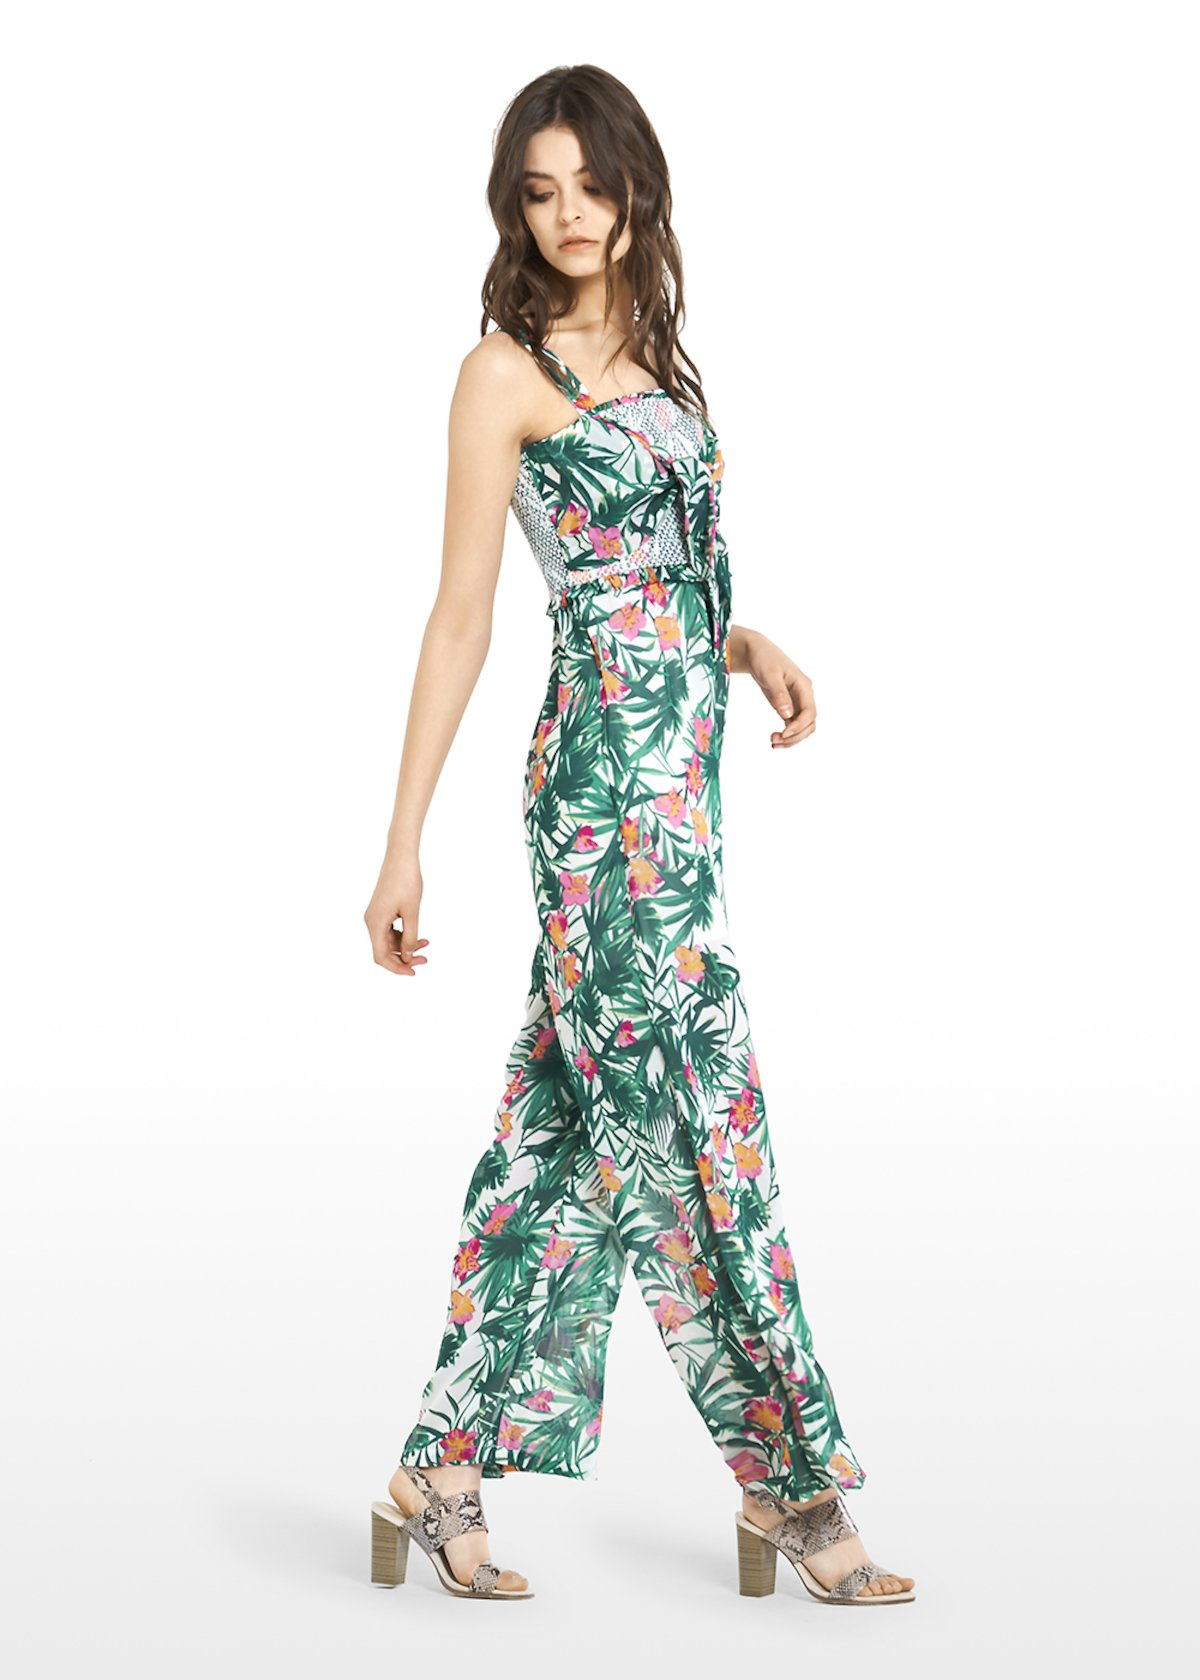 Tiger georgette jumpsuit with bow detail - White\ Amazon\ Fantasia - Woman - Category image